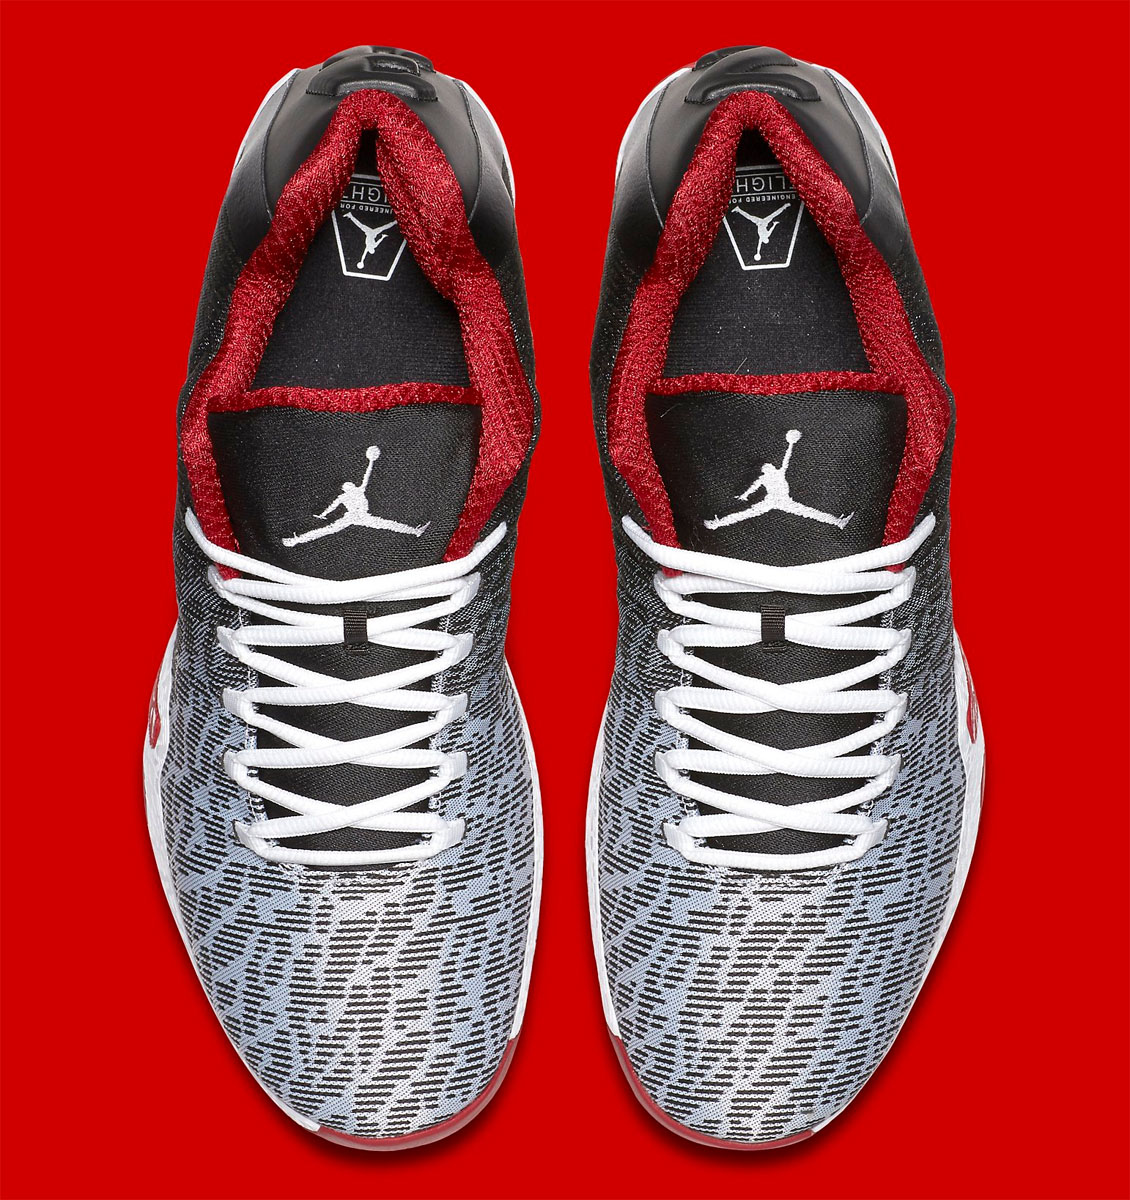 new style f7e08 8038e The Air Jordan XX9 Low Surfaces In Bulls Colors | Sole Collector